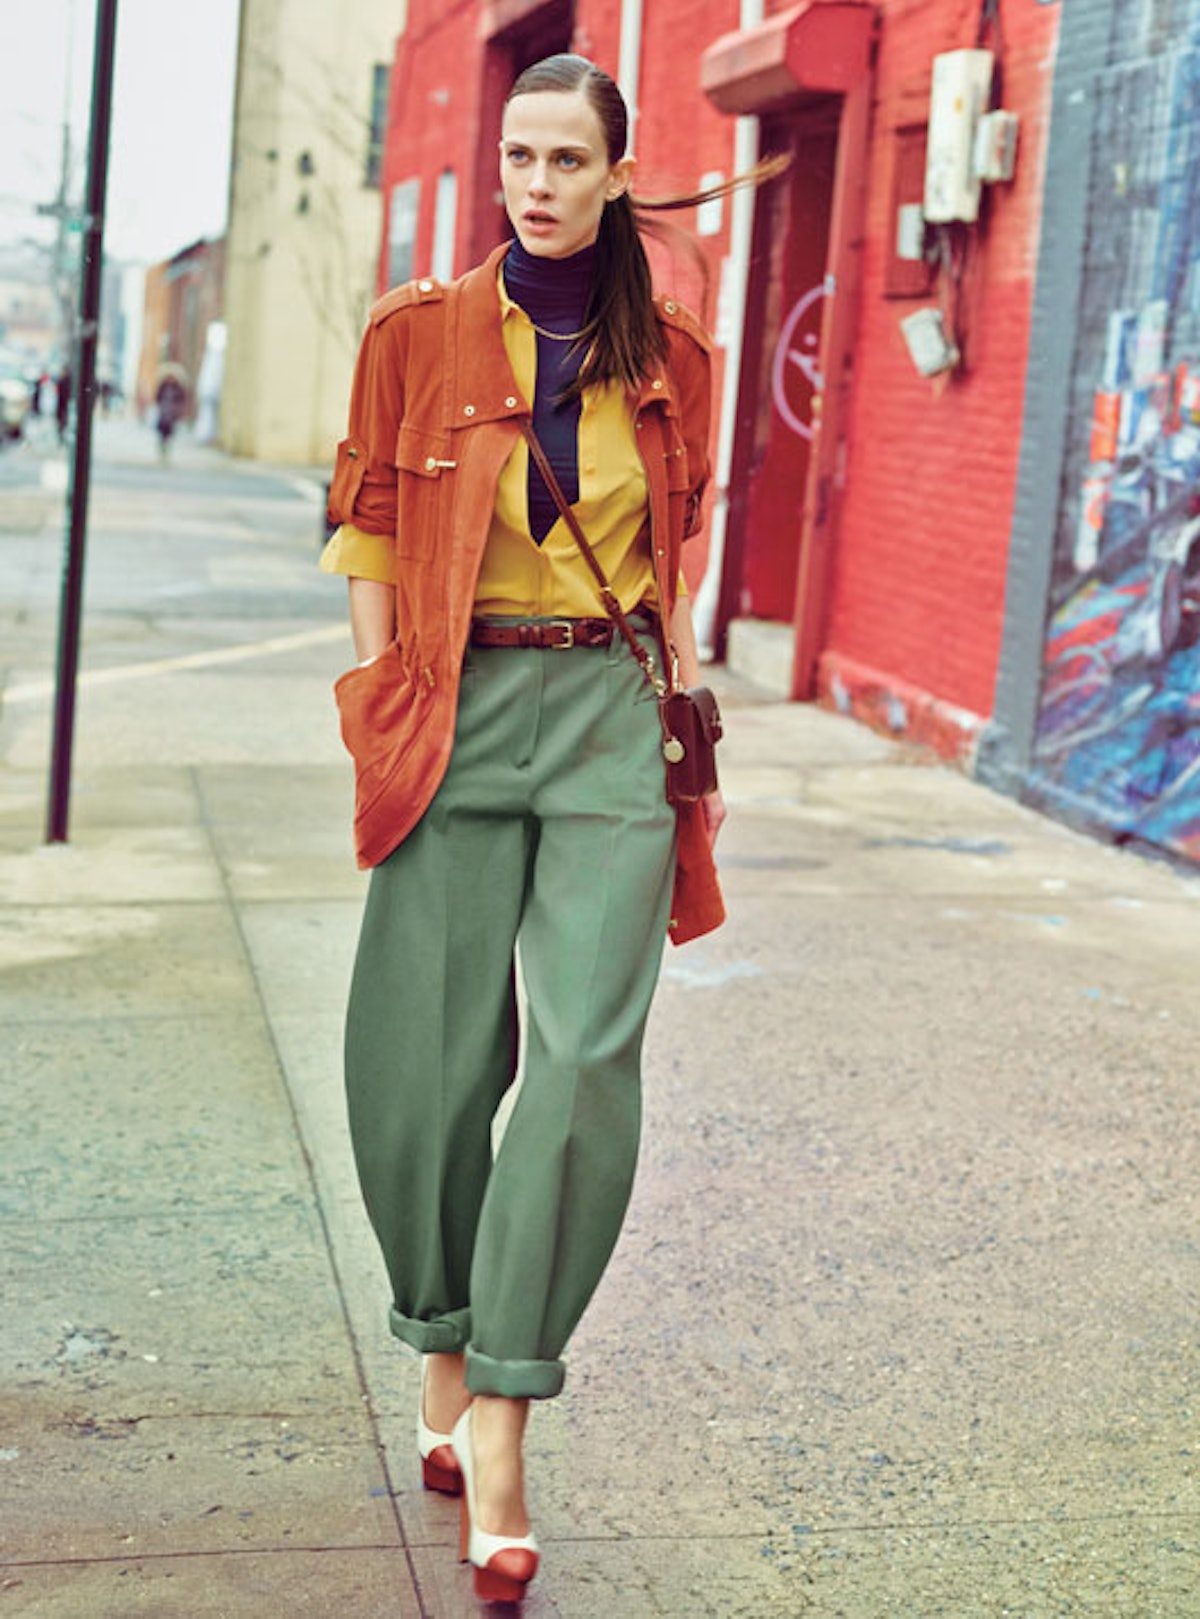 fass-menswear-inspired-coats-and-trousers-07-l.jpg